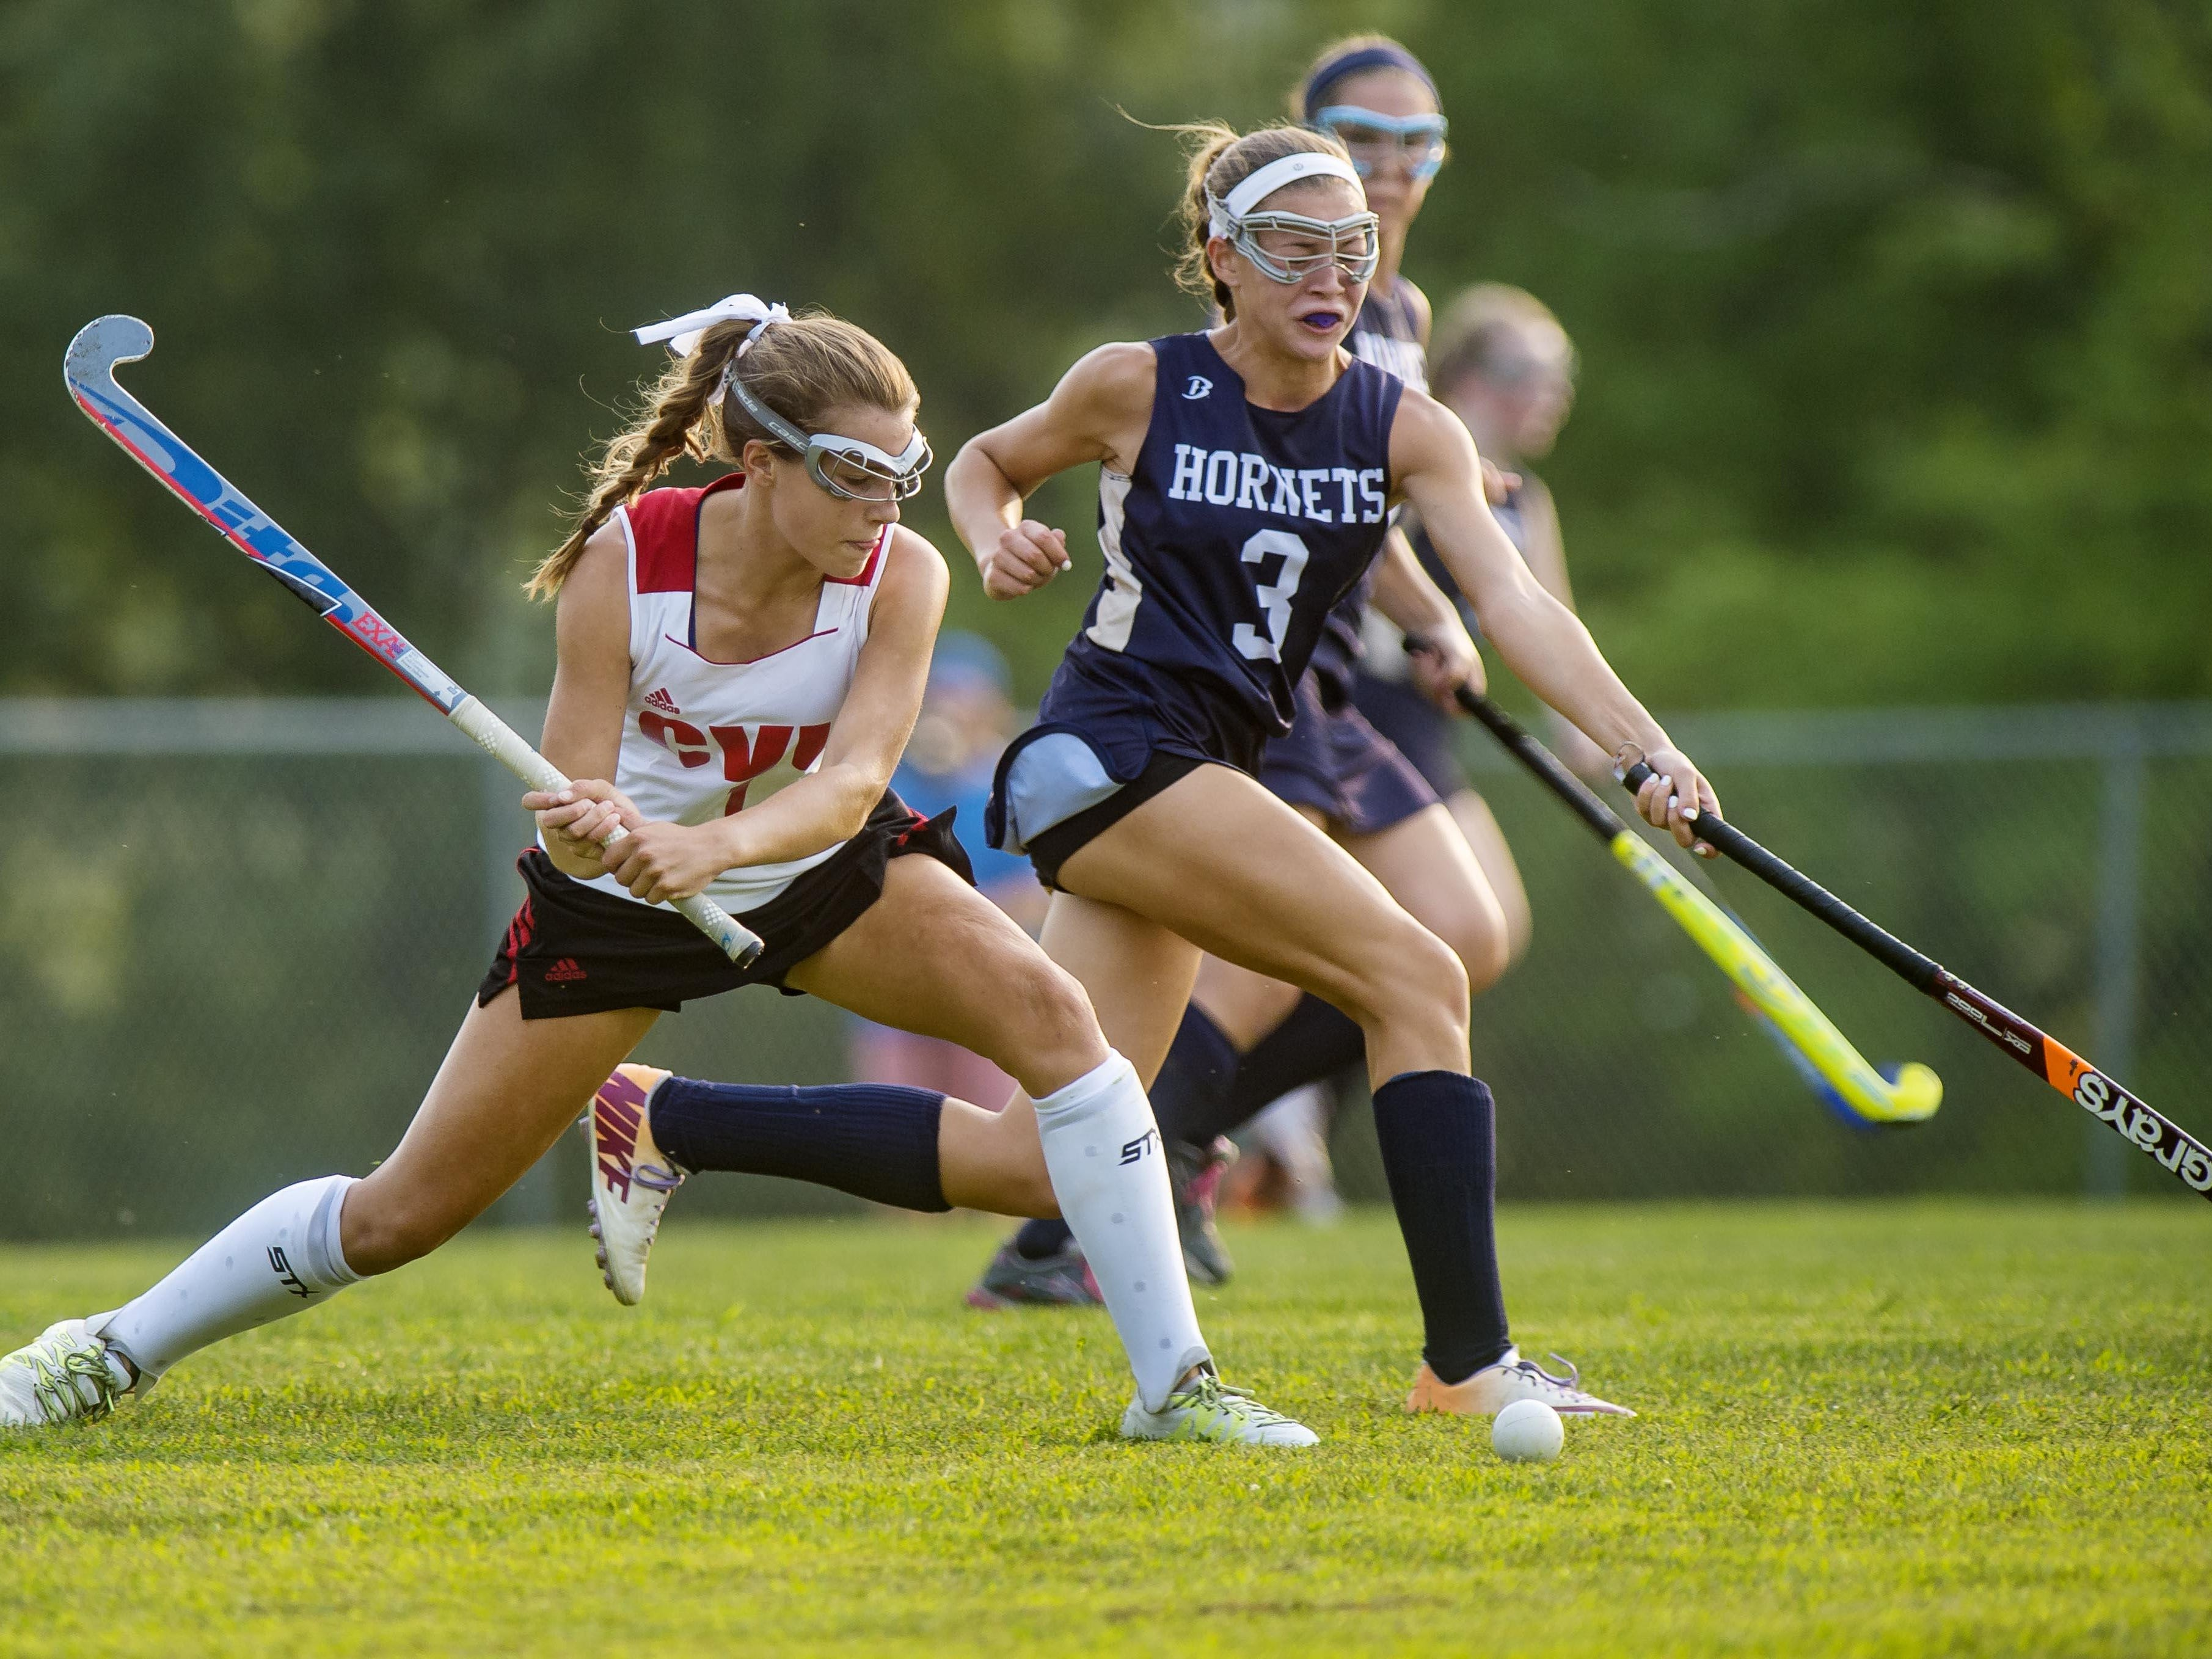 CVU's Lydia Maitland, left, shoots in front of Essex's Jenna Puleo in Hinesburg earlier this season.